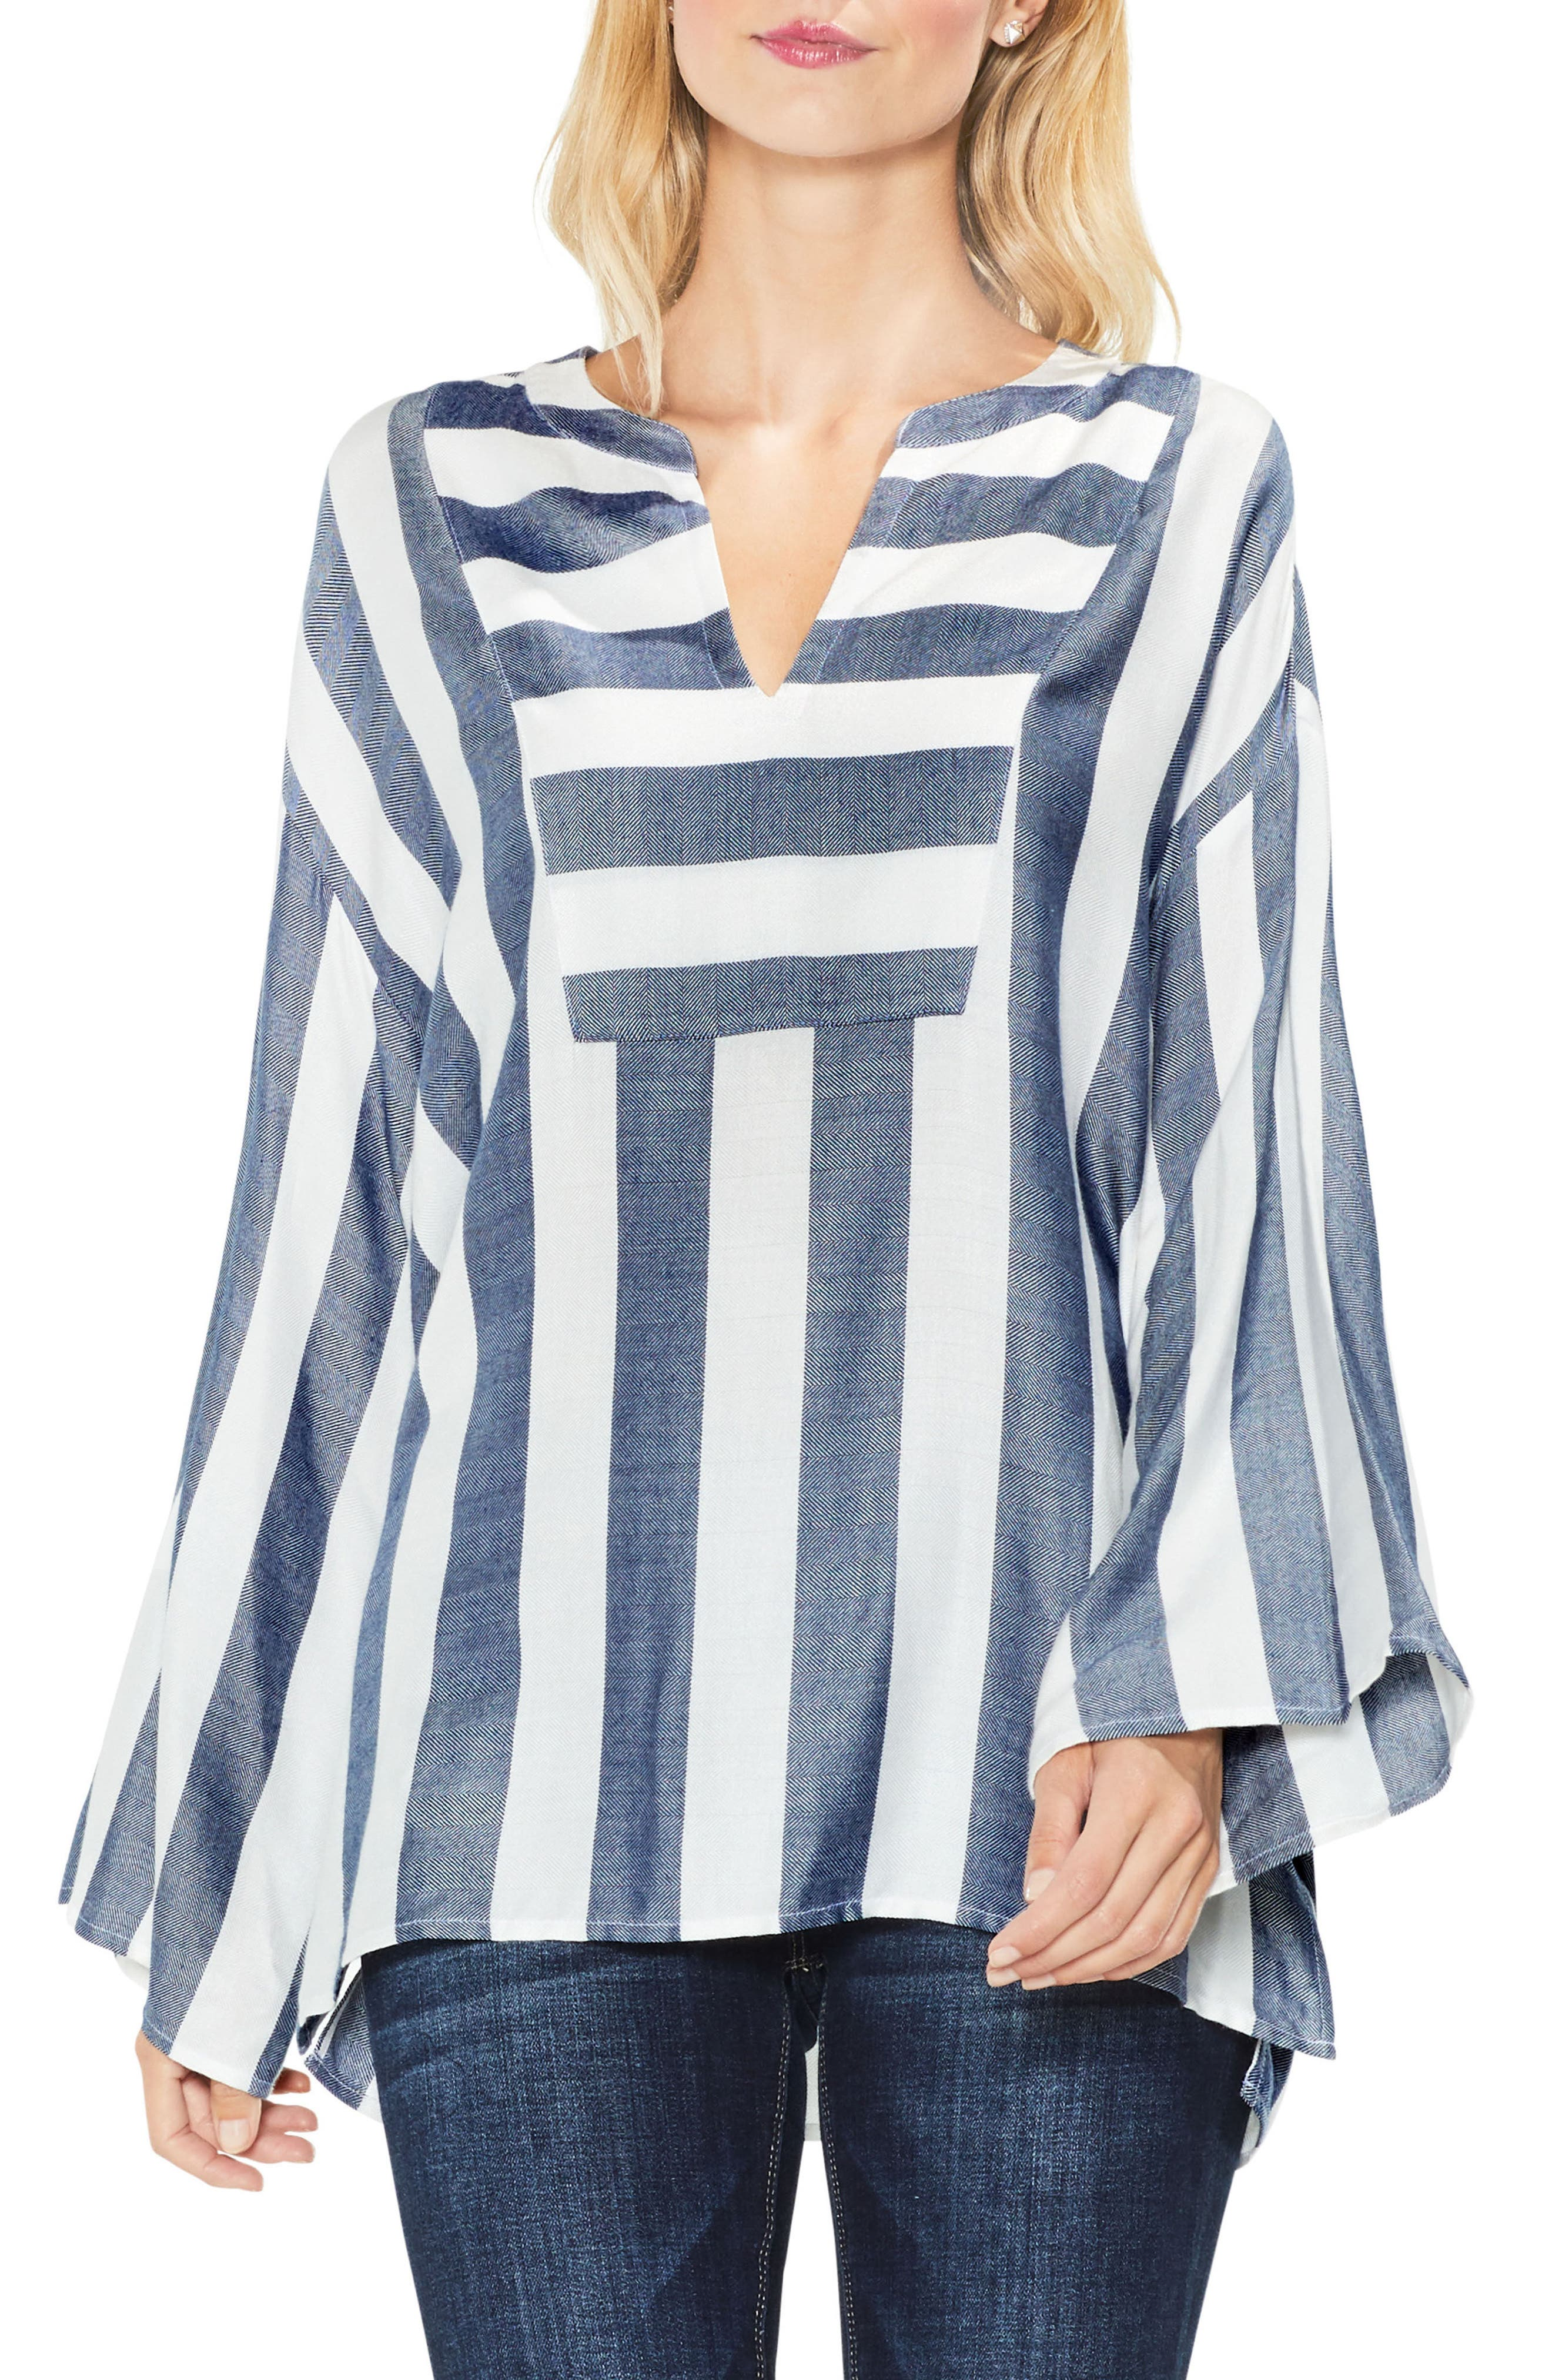 Bell Sleeve Top,                             Main thumbnail 1, color,                             453